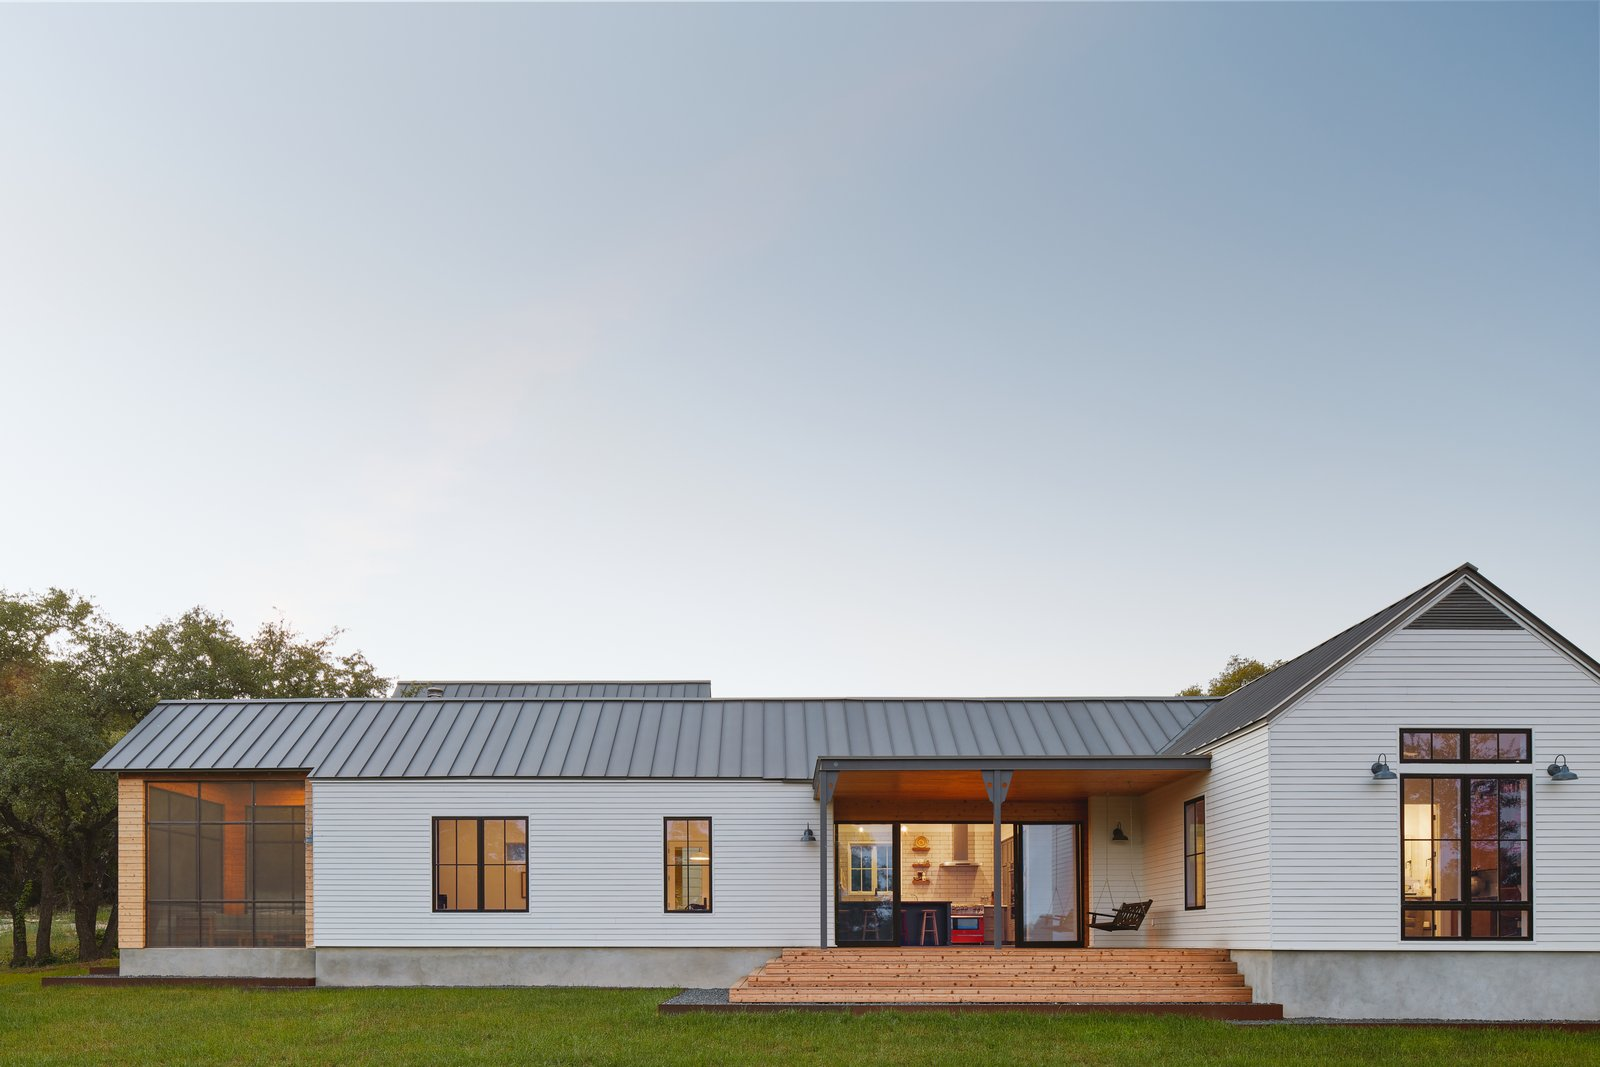 Exterior, Gable RoofLine, Wood Siding Material, House Building Type, Metal Roof Material, and Farmhouse Building Type  Photo 1 of 15 in This Texas Hill Country House Oozes With European Charm